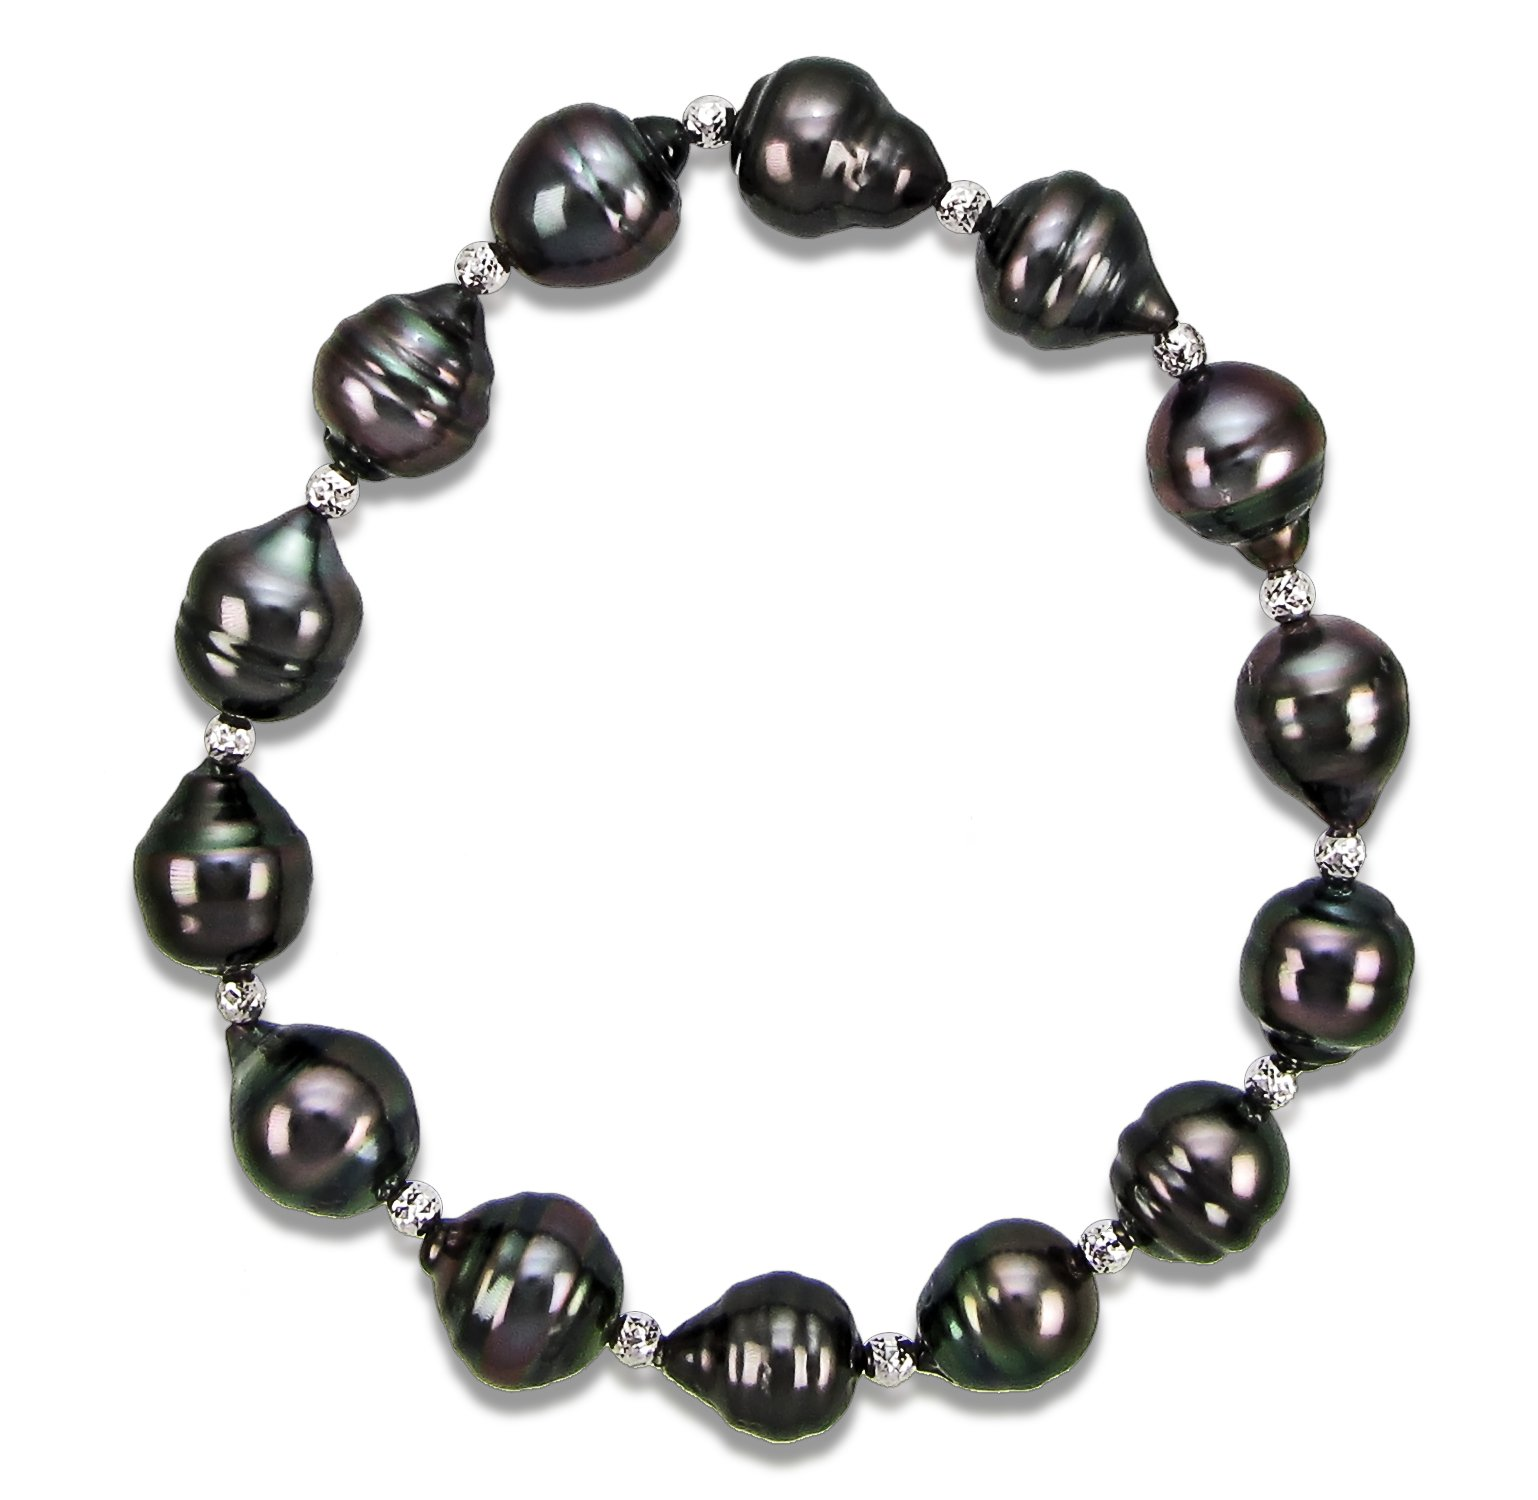 8-10mm Black Off-shape Tahitian Cultured Pearl and Sterling Silver Sparkling Beads Stretch Bracelet, 7.5''